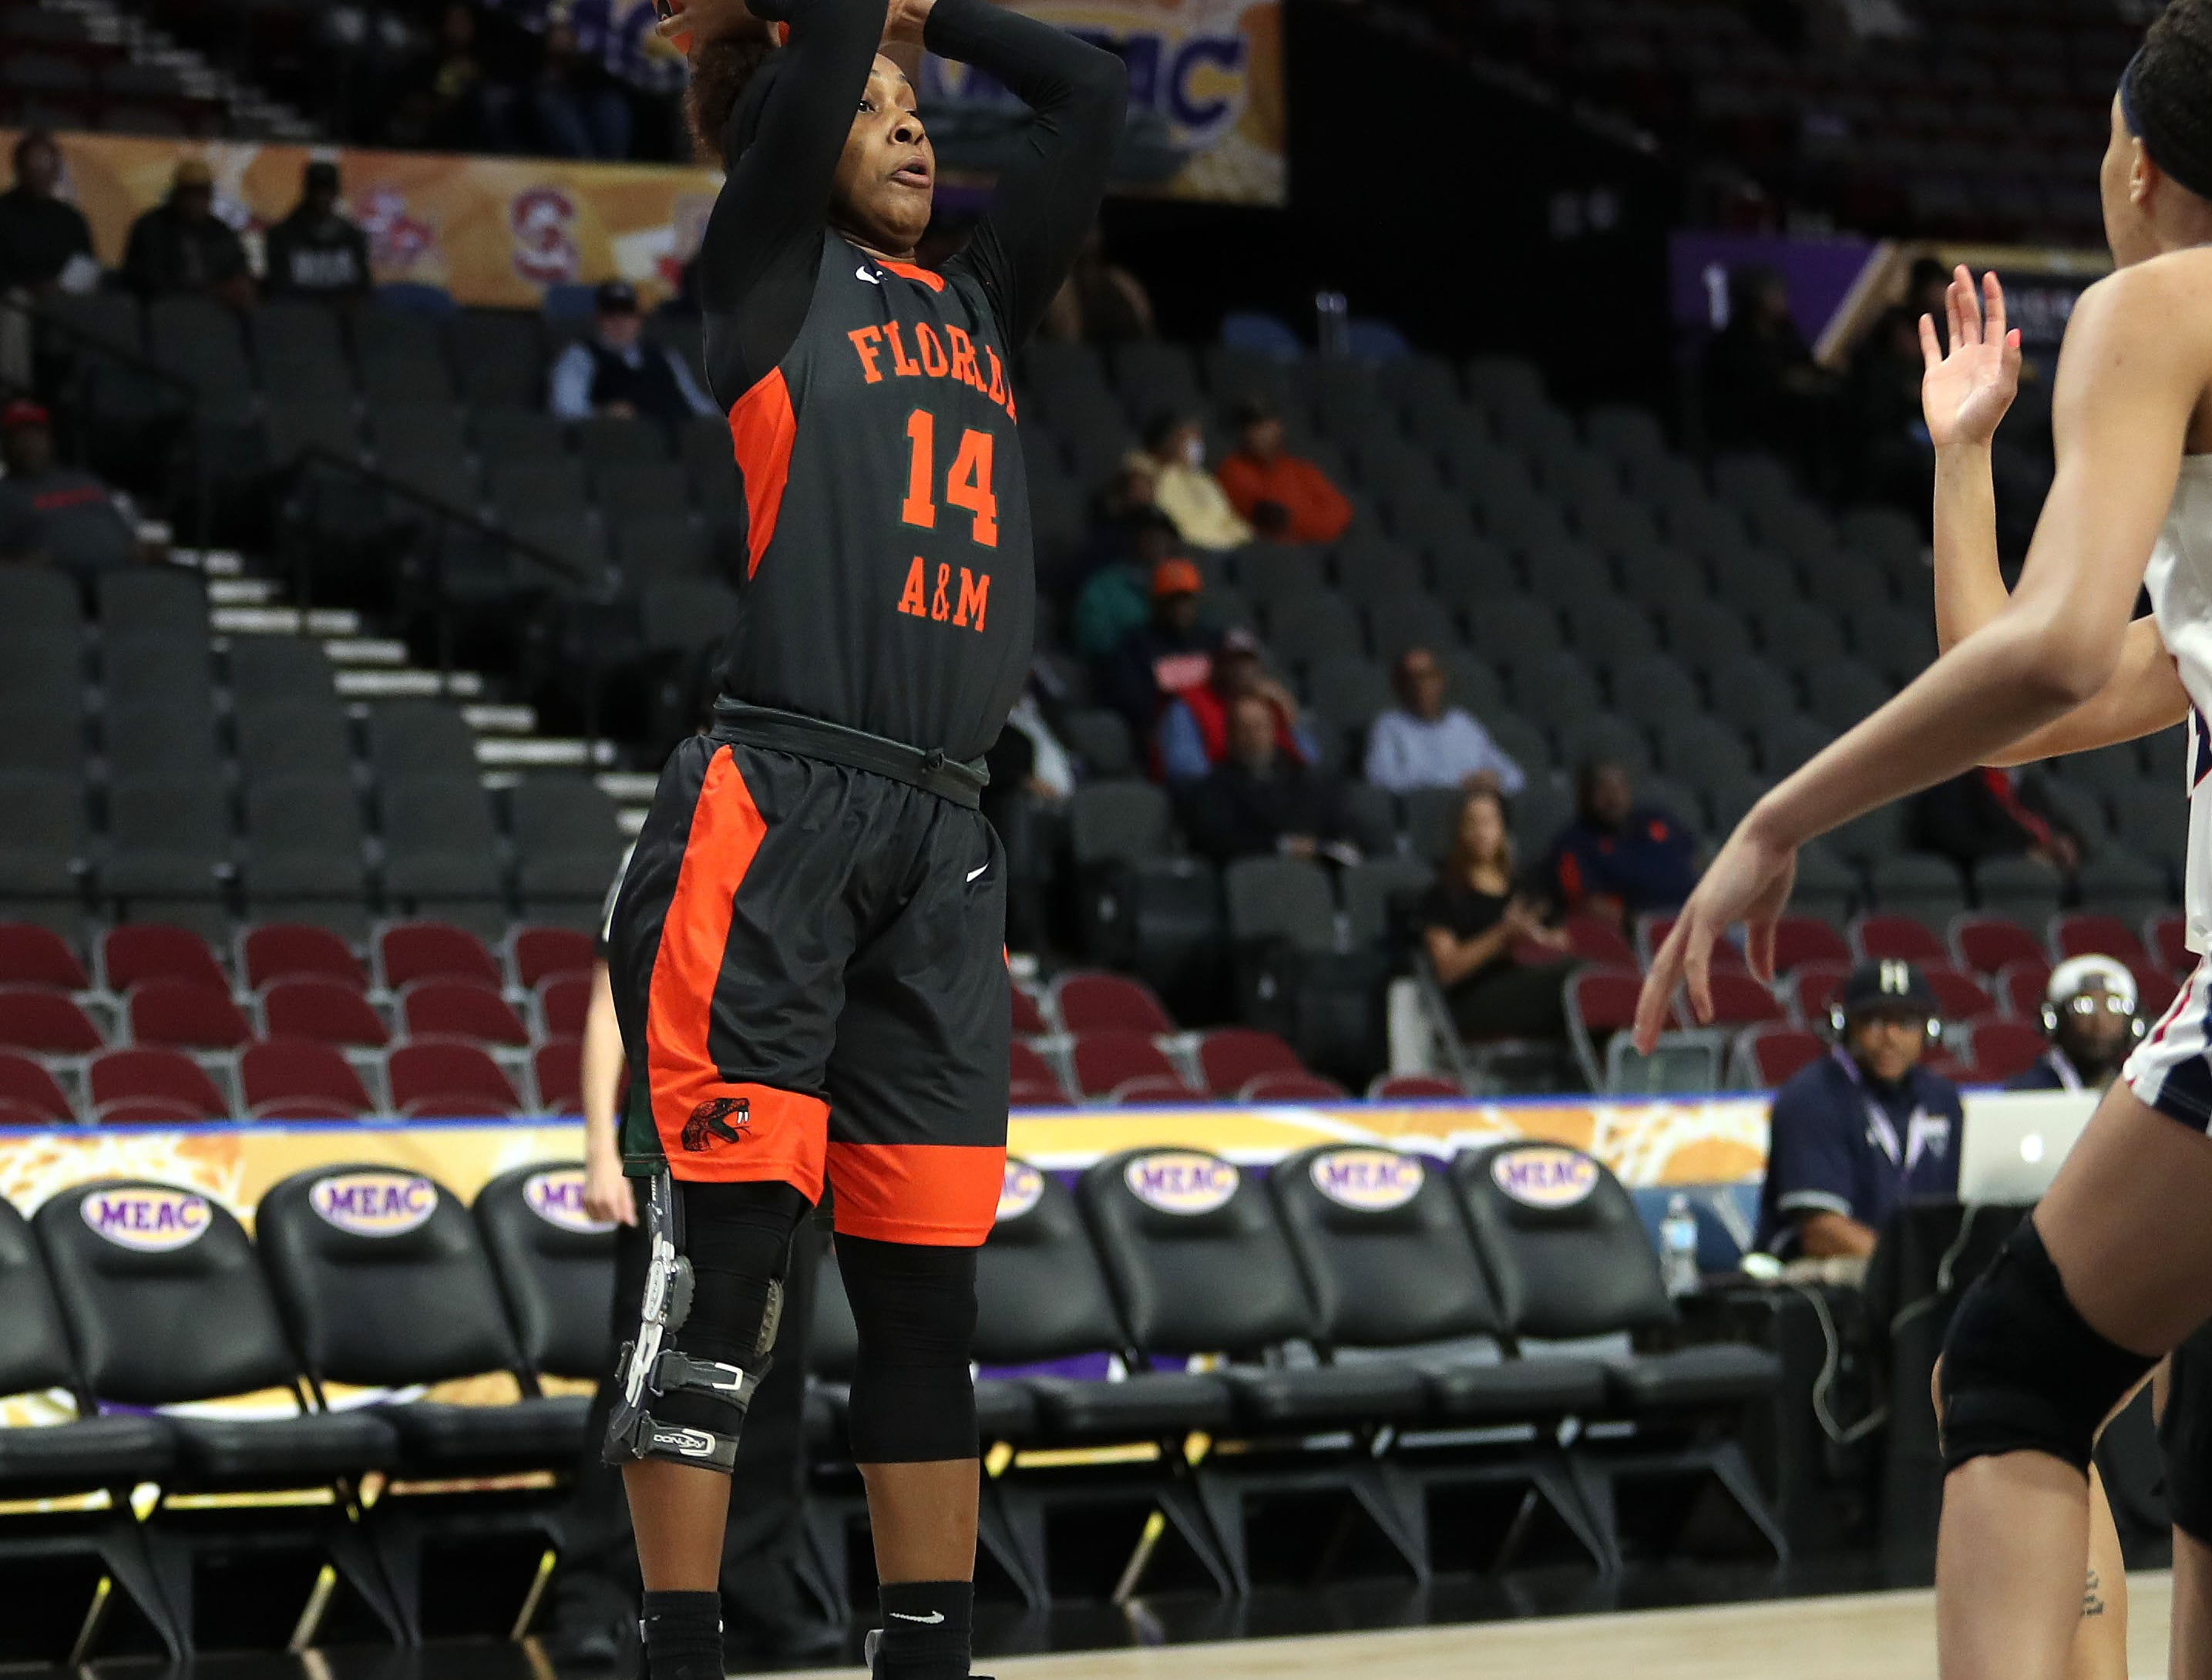 FAMU's Tyra James looks to pass the ball against Howard in the first round of the MEAC tournament on Monday, March 11, 2019.